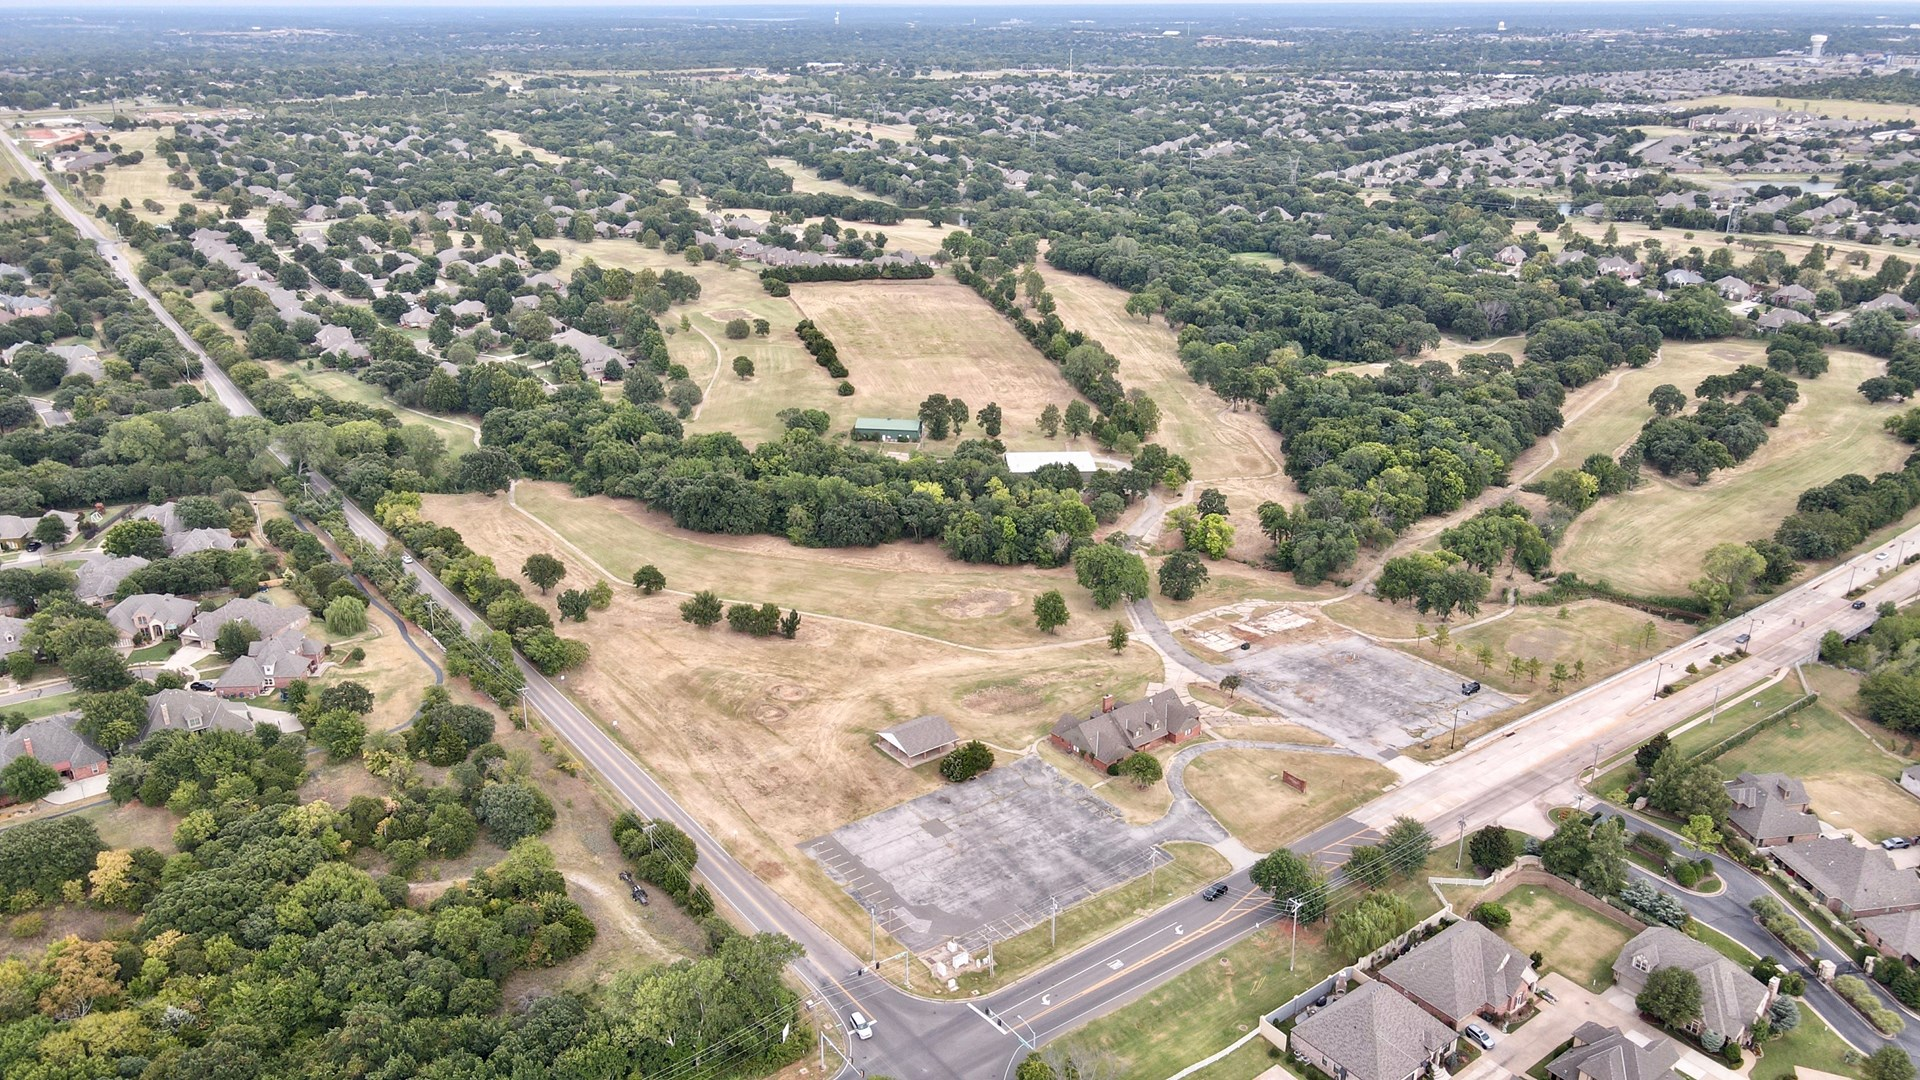 EDMOND COMMERCIAL DEVELOPMENT LAND FOR SALE APPROVED PUD OK